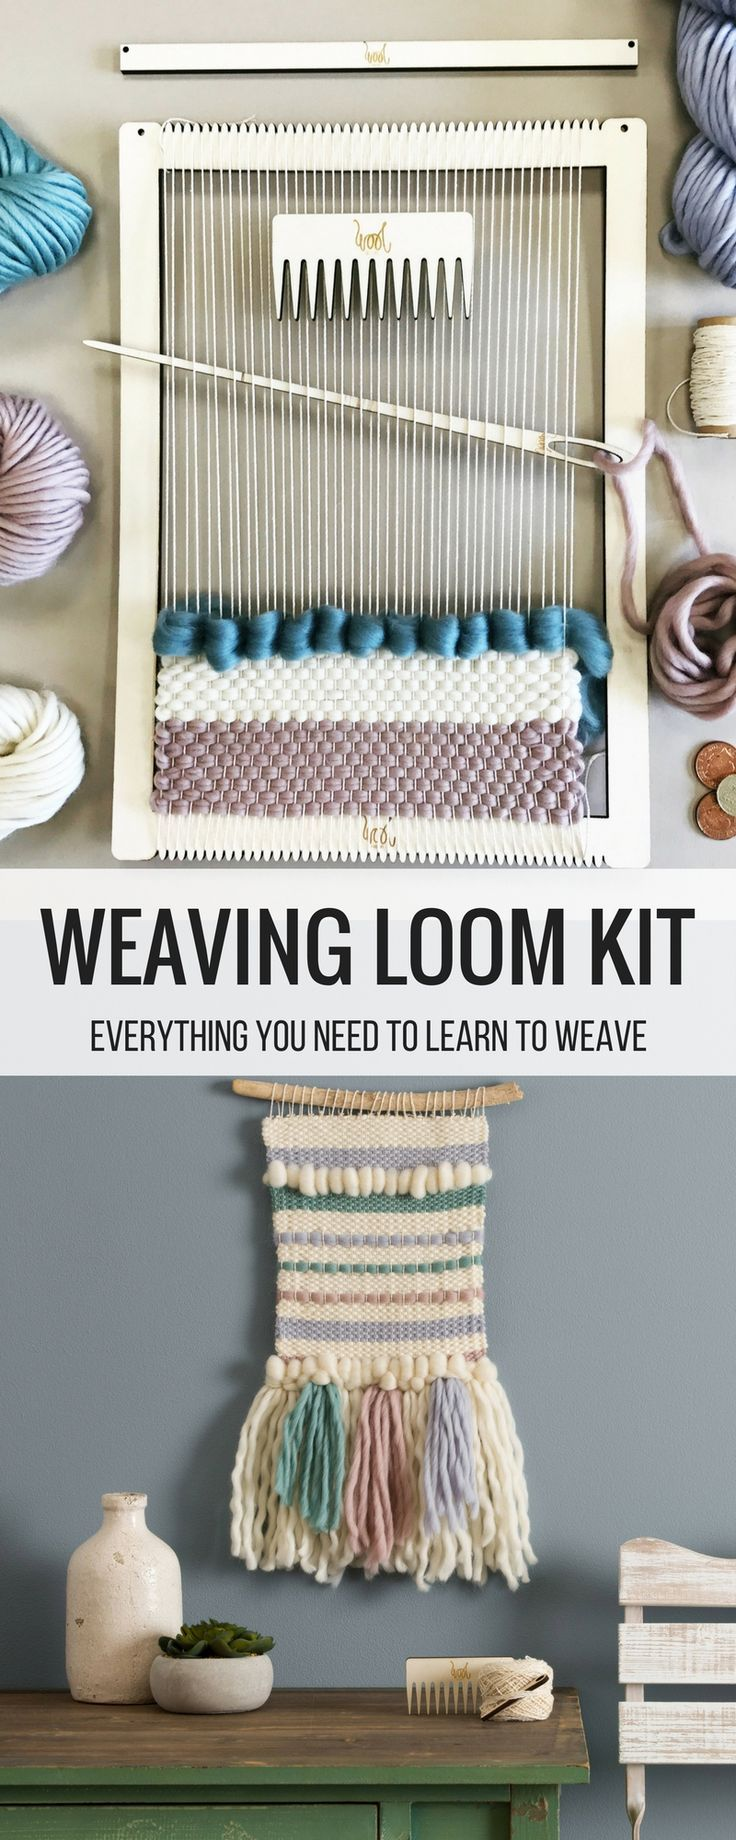 Weaving Loom Kit   Perfect For Beginners! Large Lap Loom. Learn To Frame  Weave